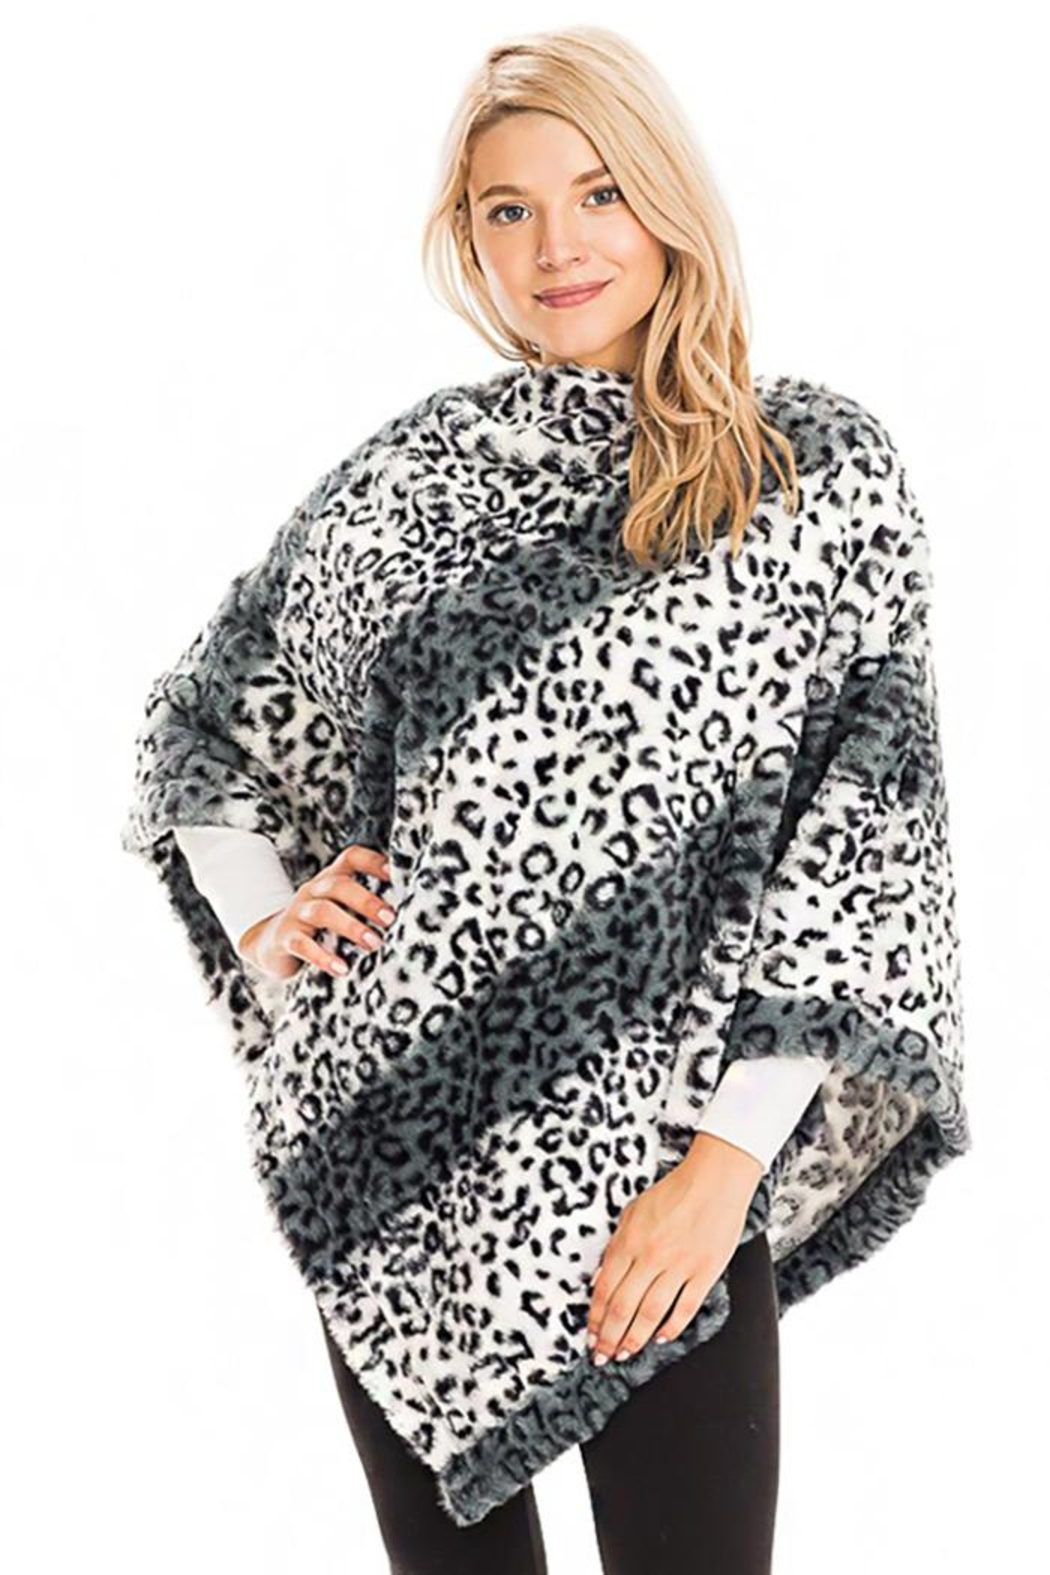 Cap Zone Leopard Patterned And Striped Throw Over Faux Fur Poncho - Front Cropped Image